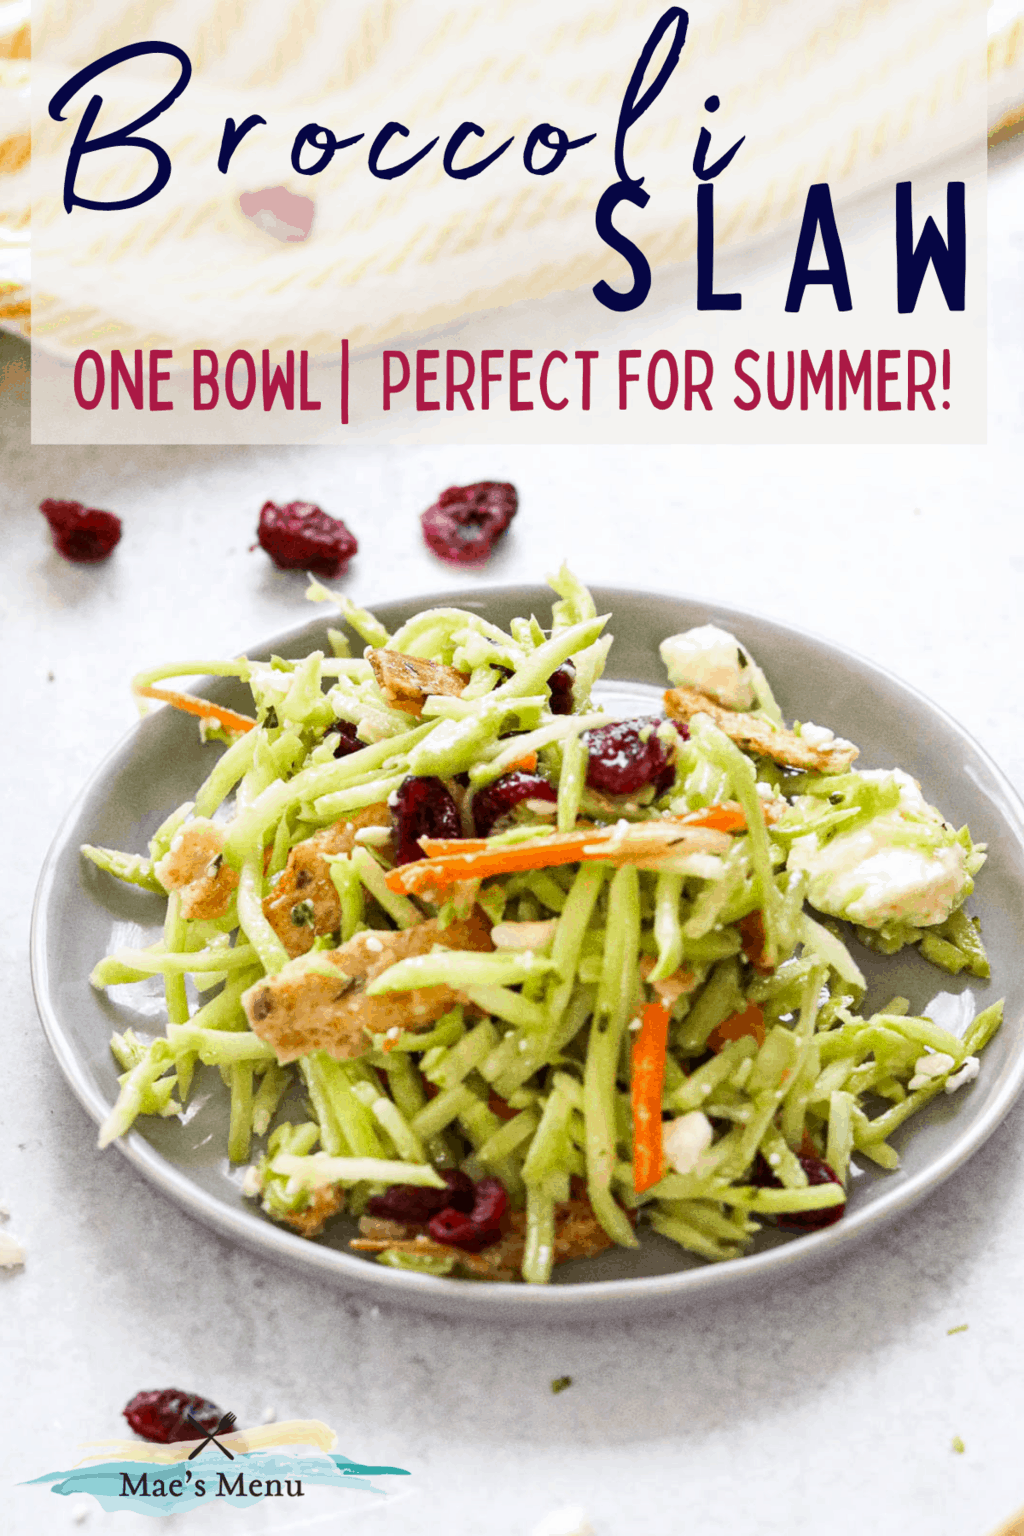 A pinterest pin for broccoli slaw with an up-close shot of a small plate of the slaw